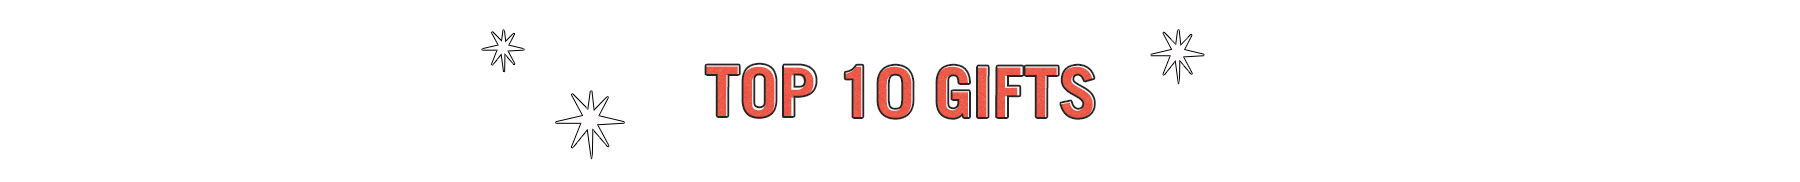 08 top10 gifts desktop eng